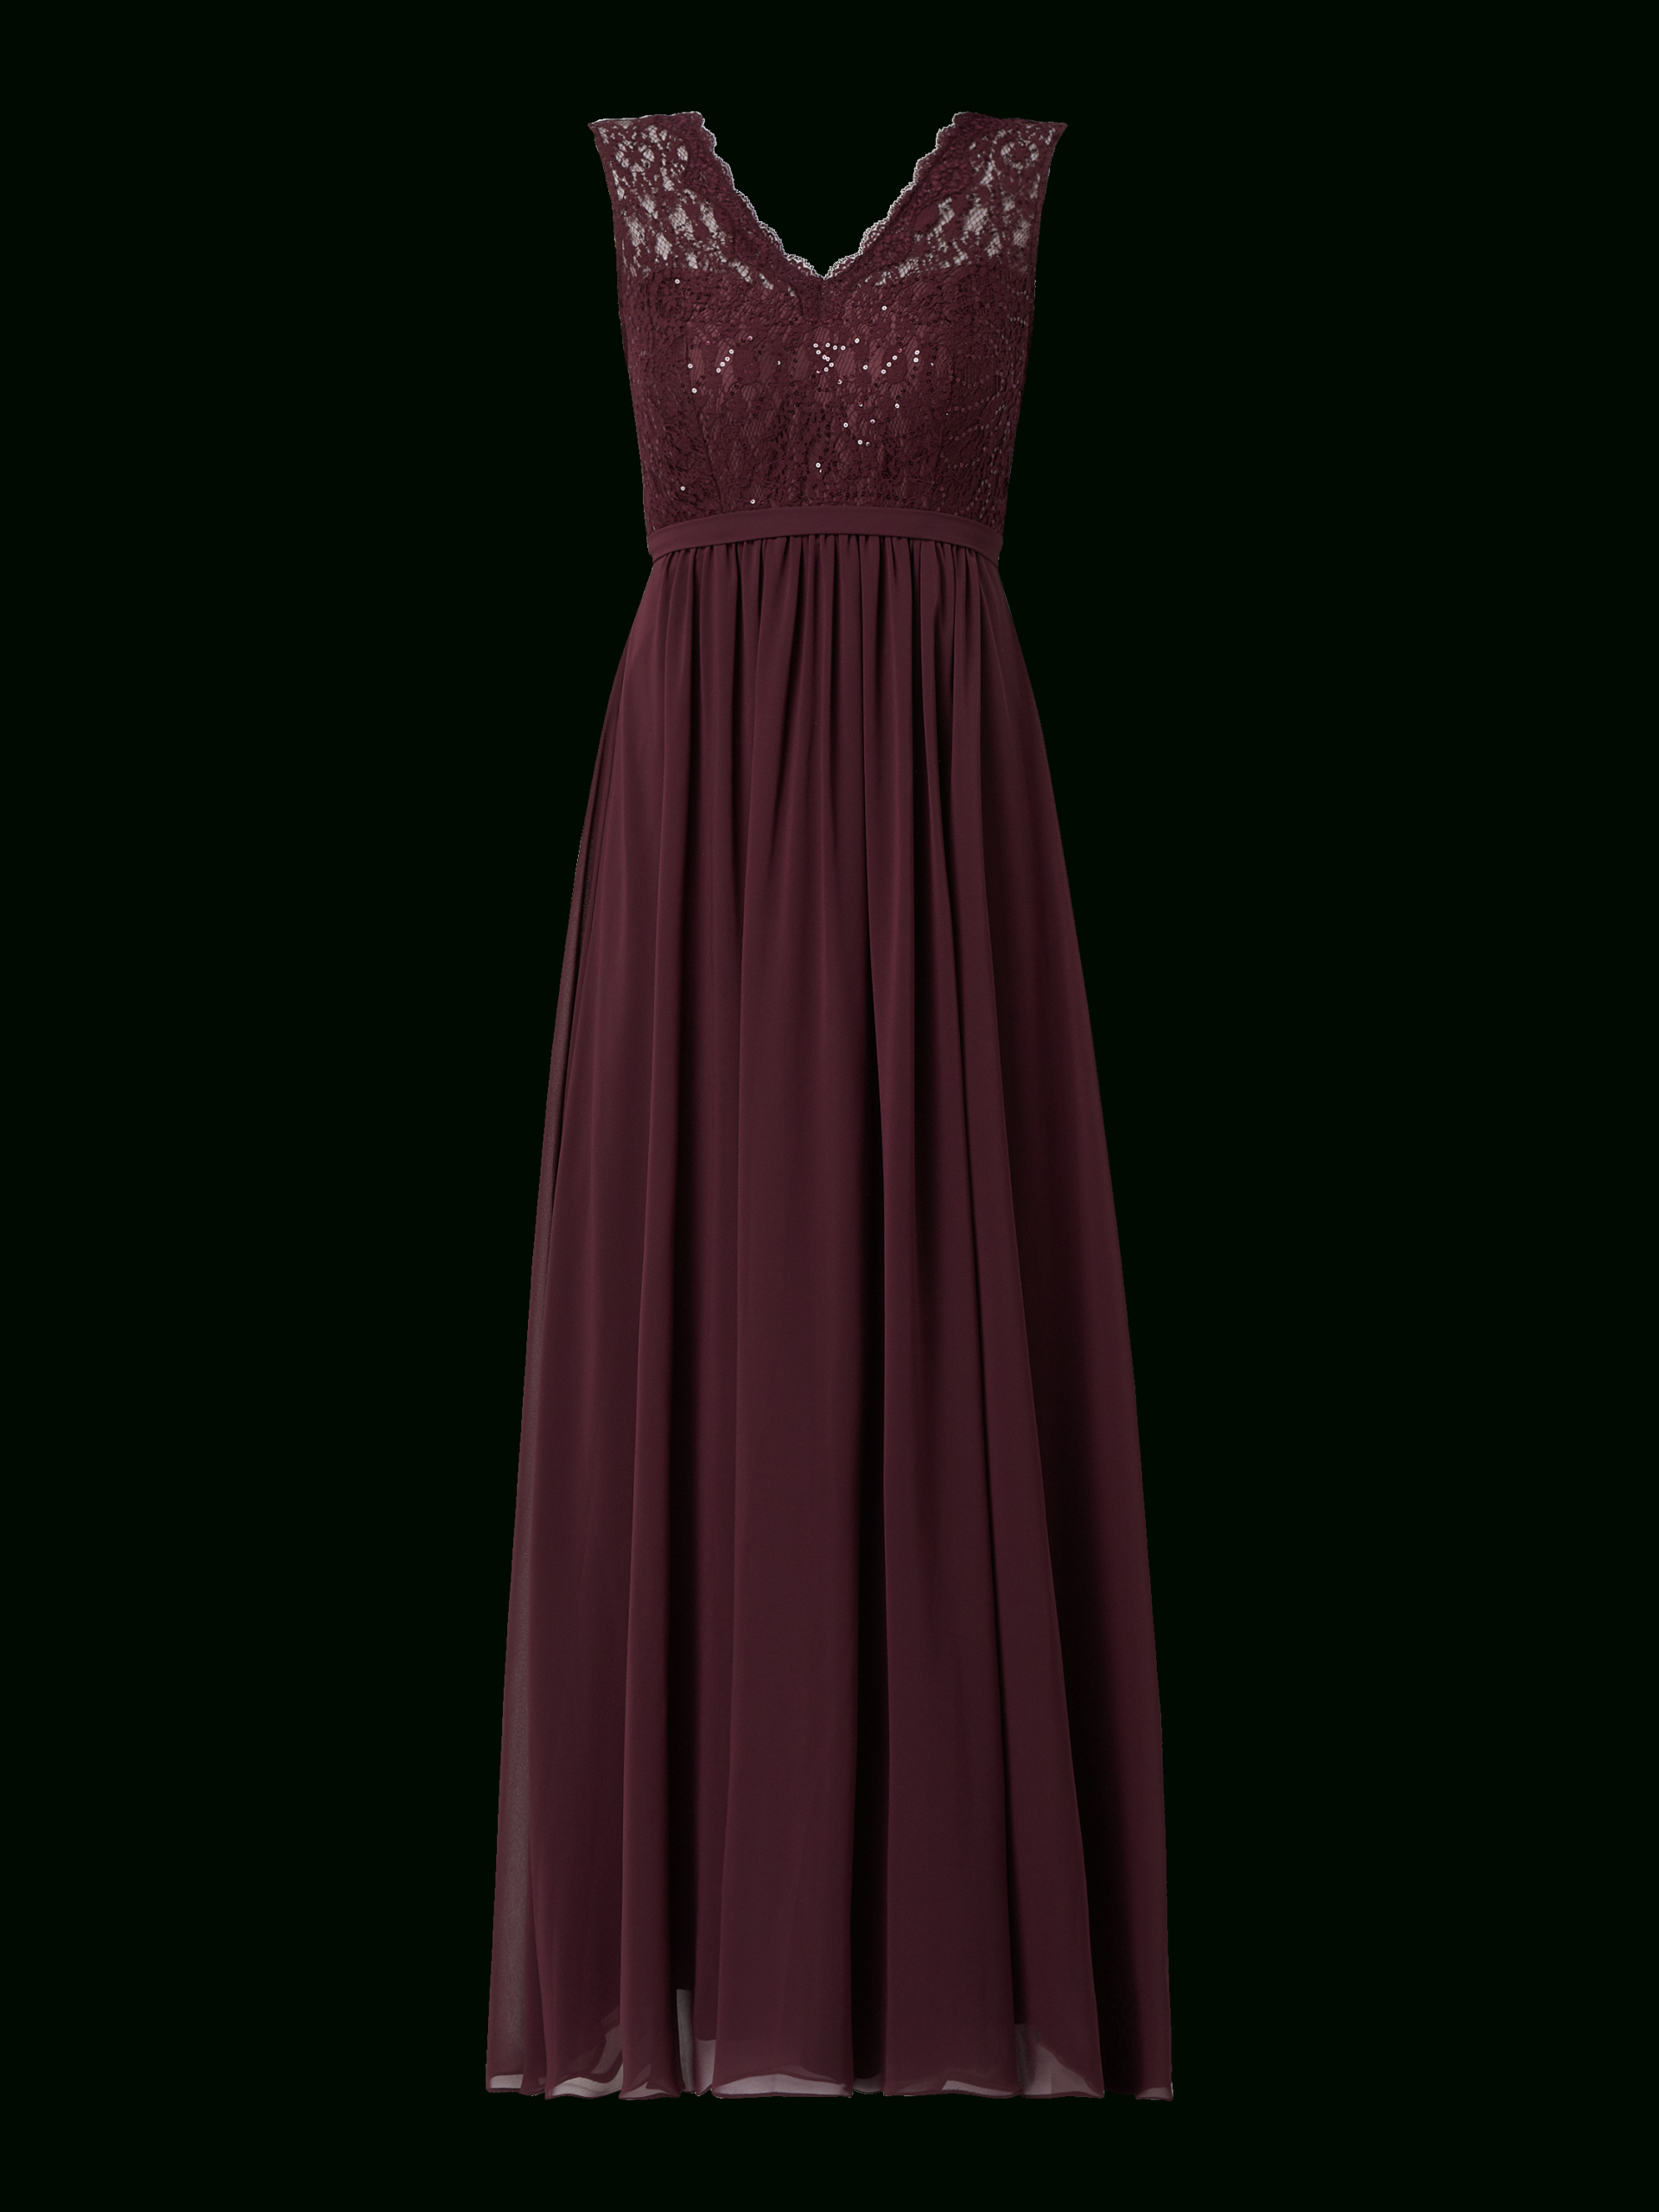 Formal Luxurius Peek Und Cloppenburg Abendkleid Galerie - Abendkleid